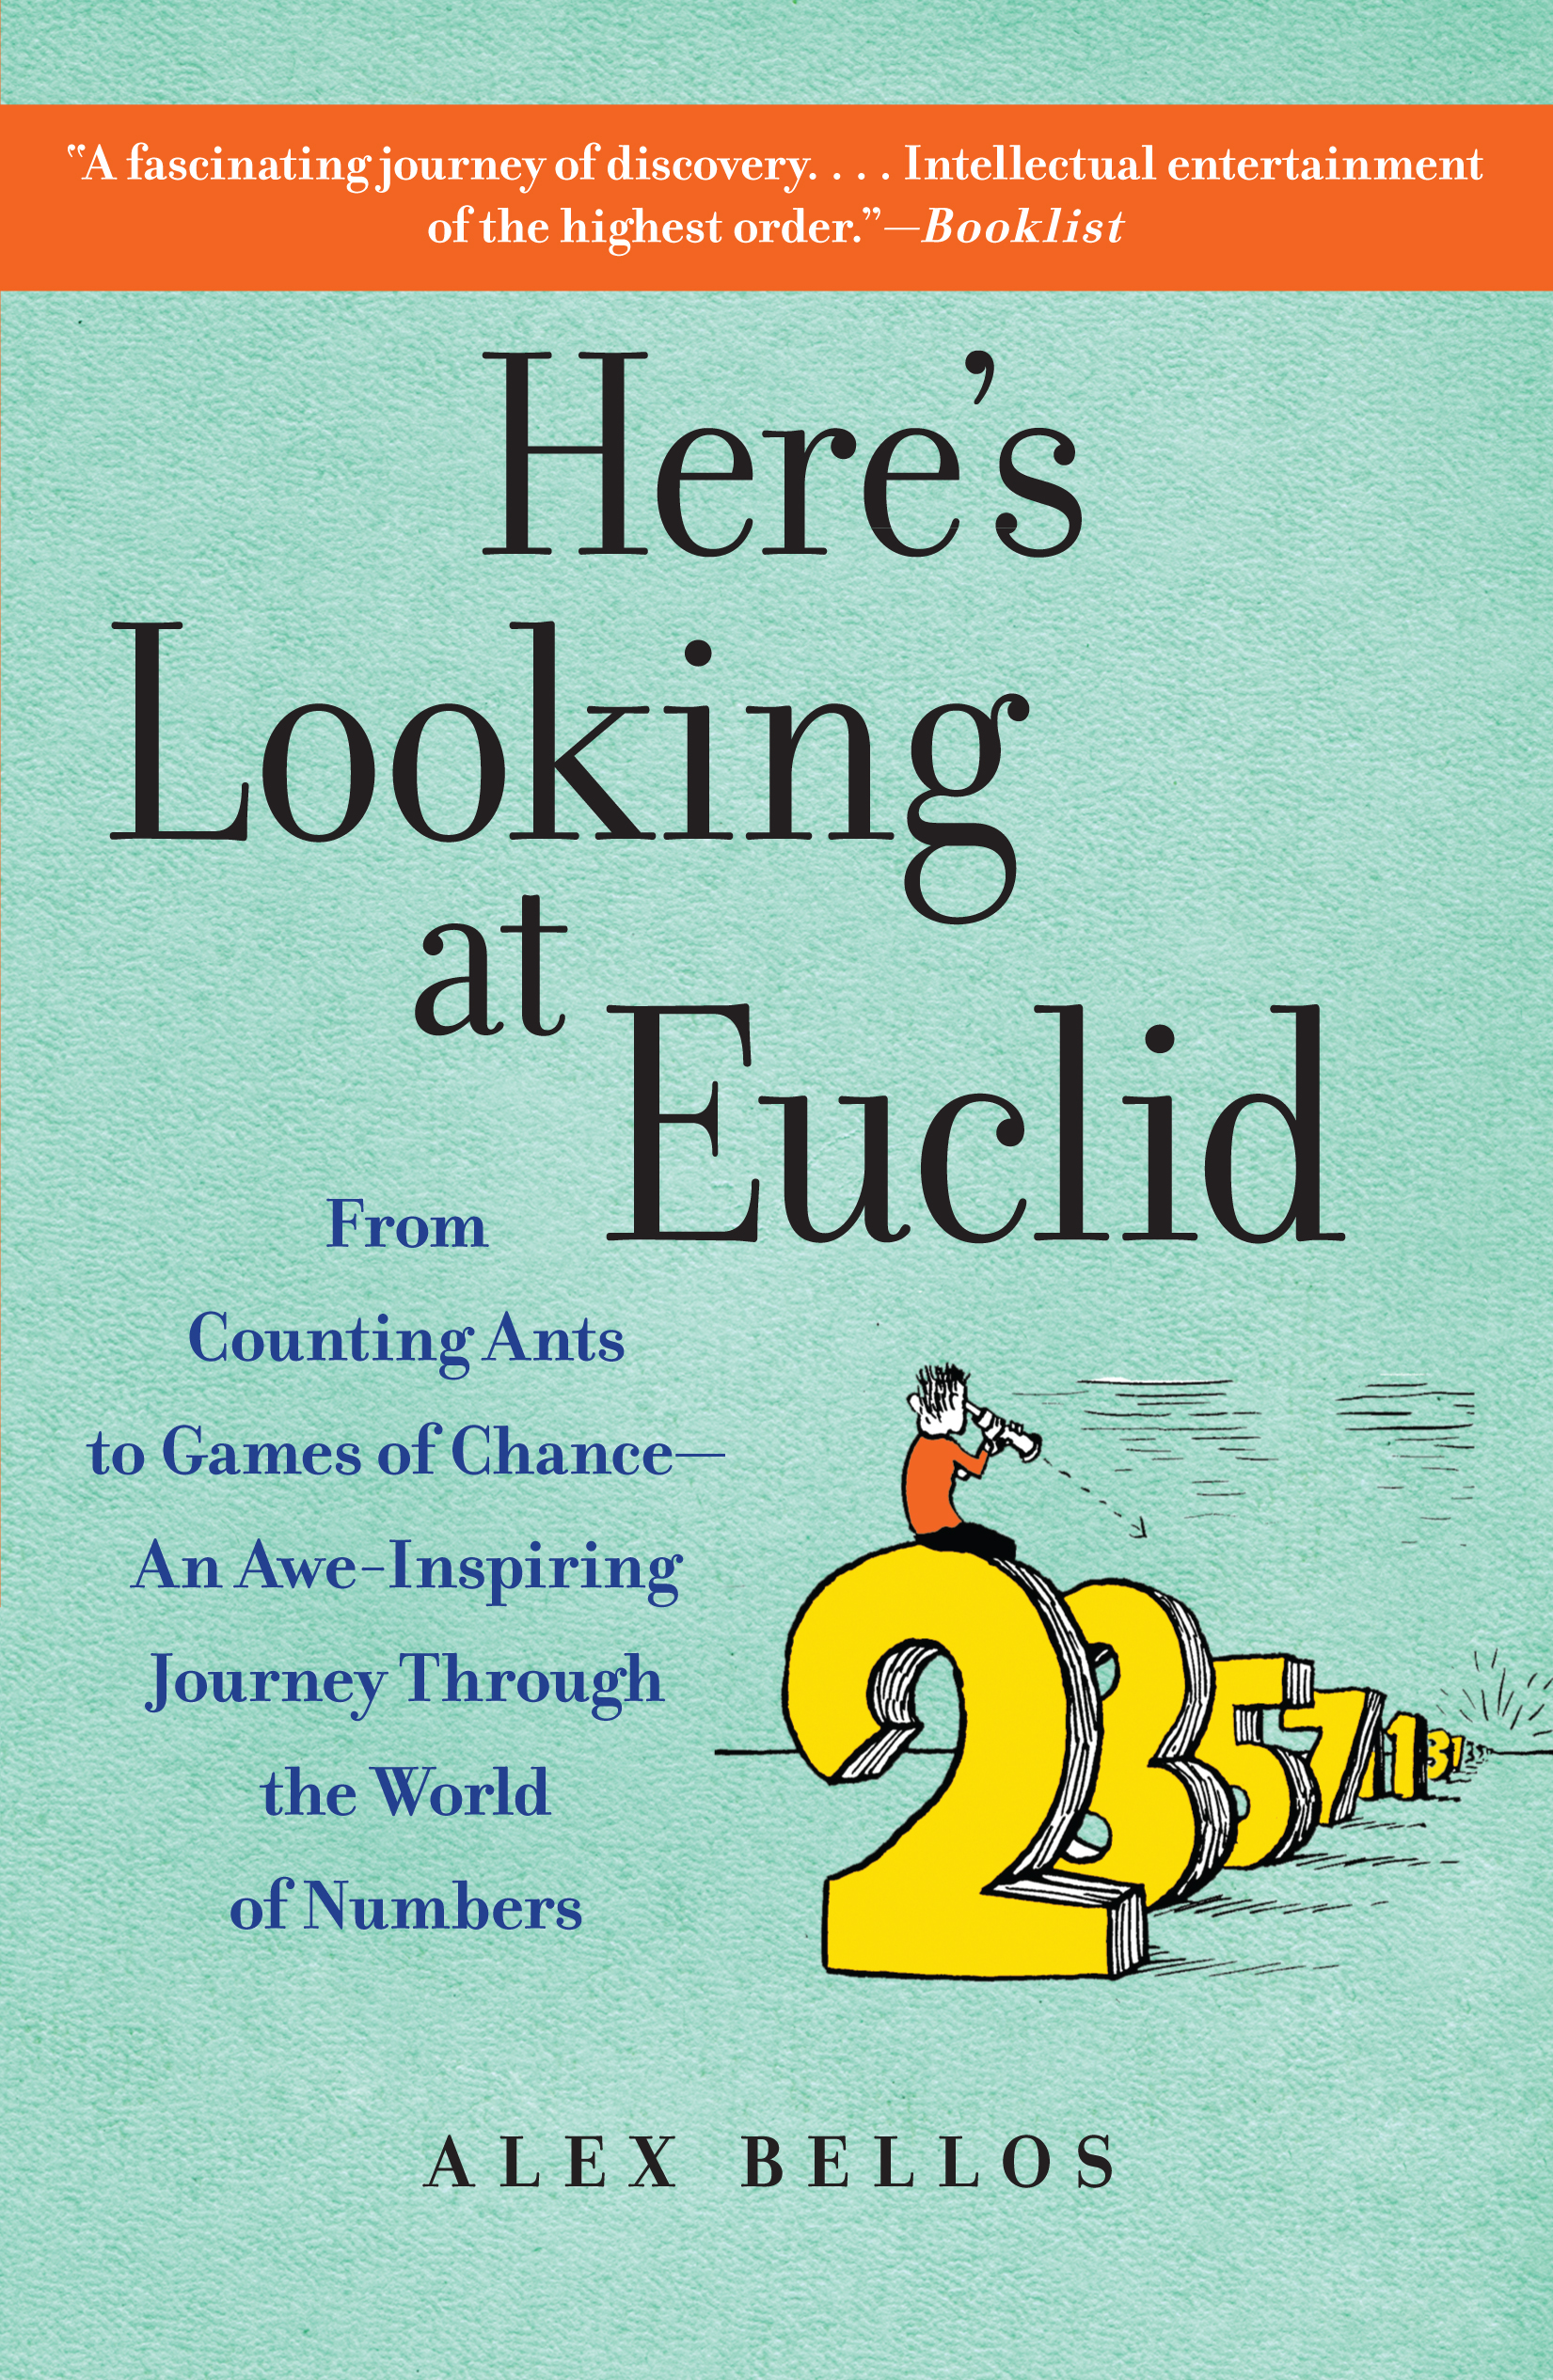 Here\'s Looking at Euclid eBook by Alex Bellos | Official Publisher ...